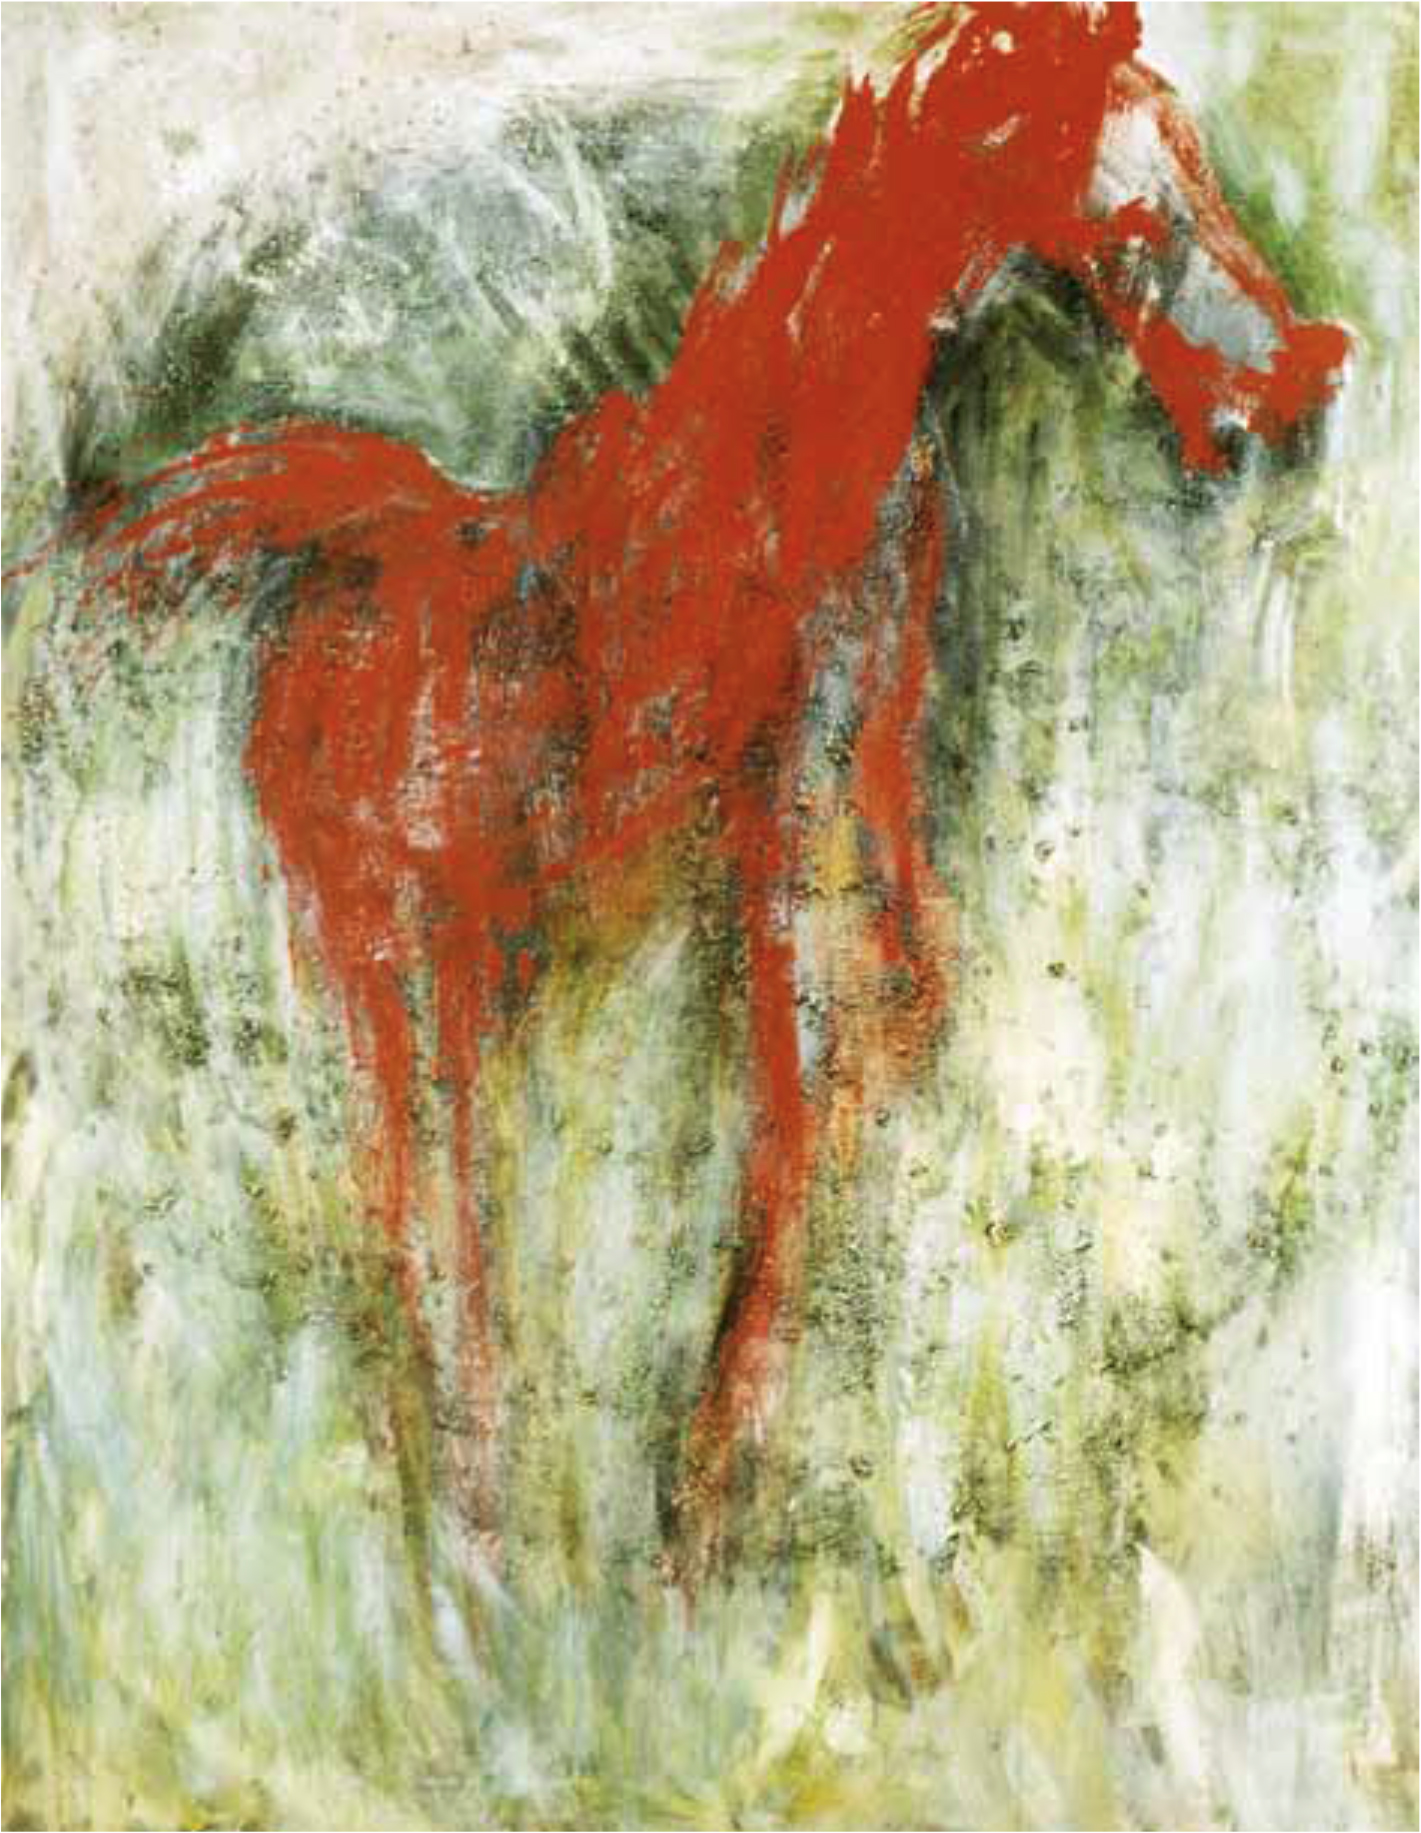 Le grand cheval rouge